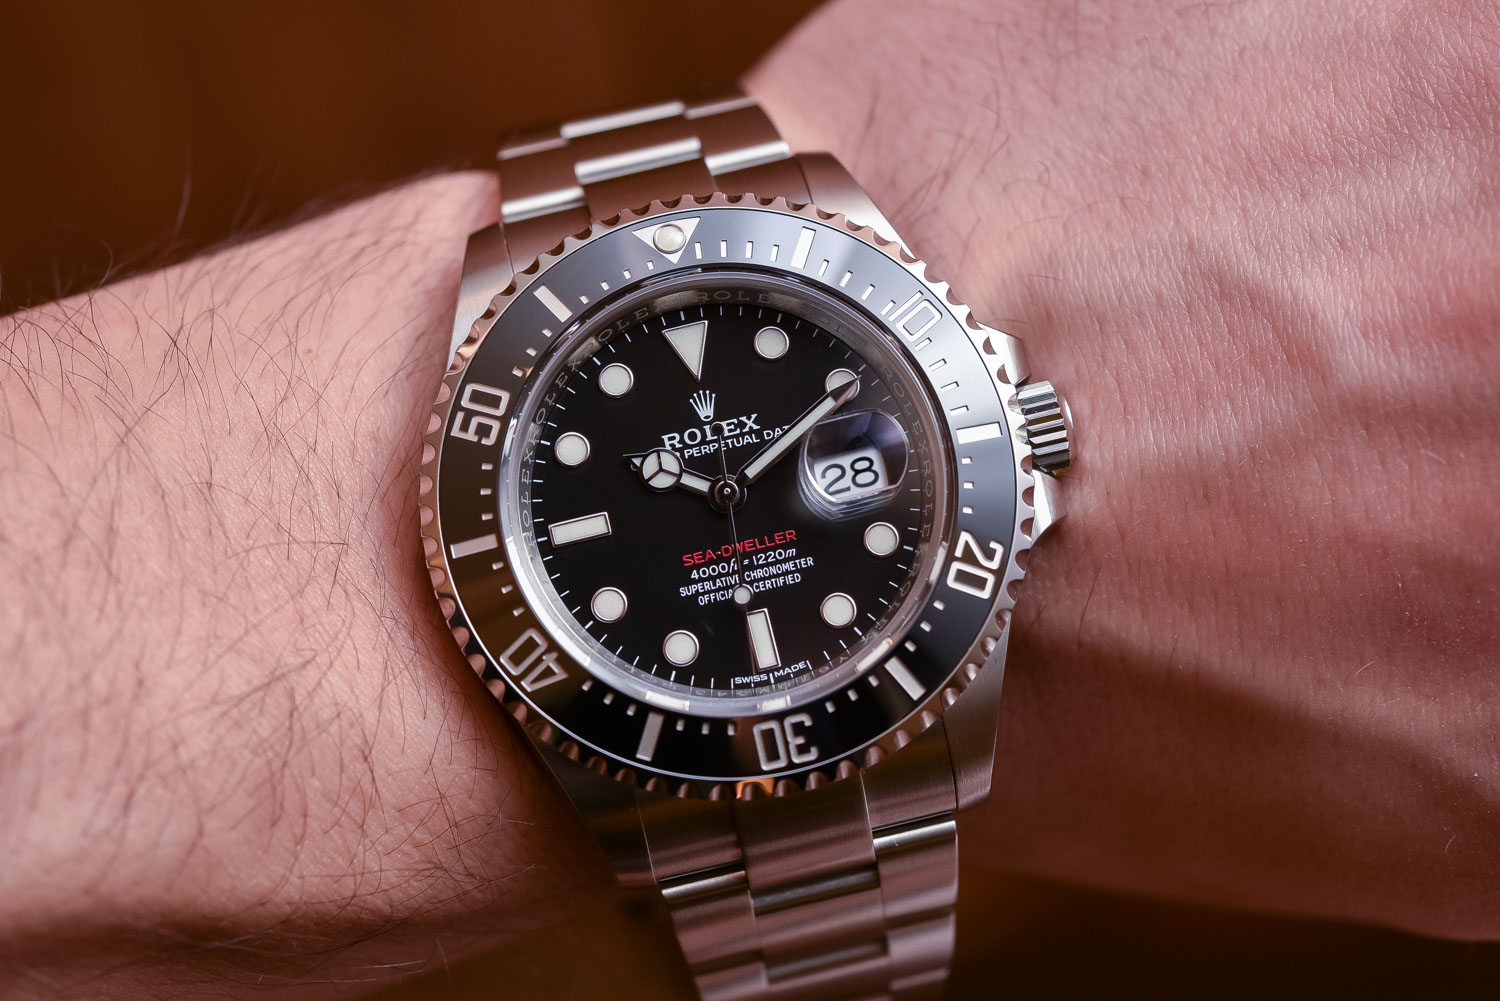 Rolex-Sea-Dweller-43mm-126600-Baselworld-2017-Review-1 - Summer Is Coming - 10 Great Dive Watches Of 2017